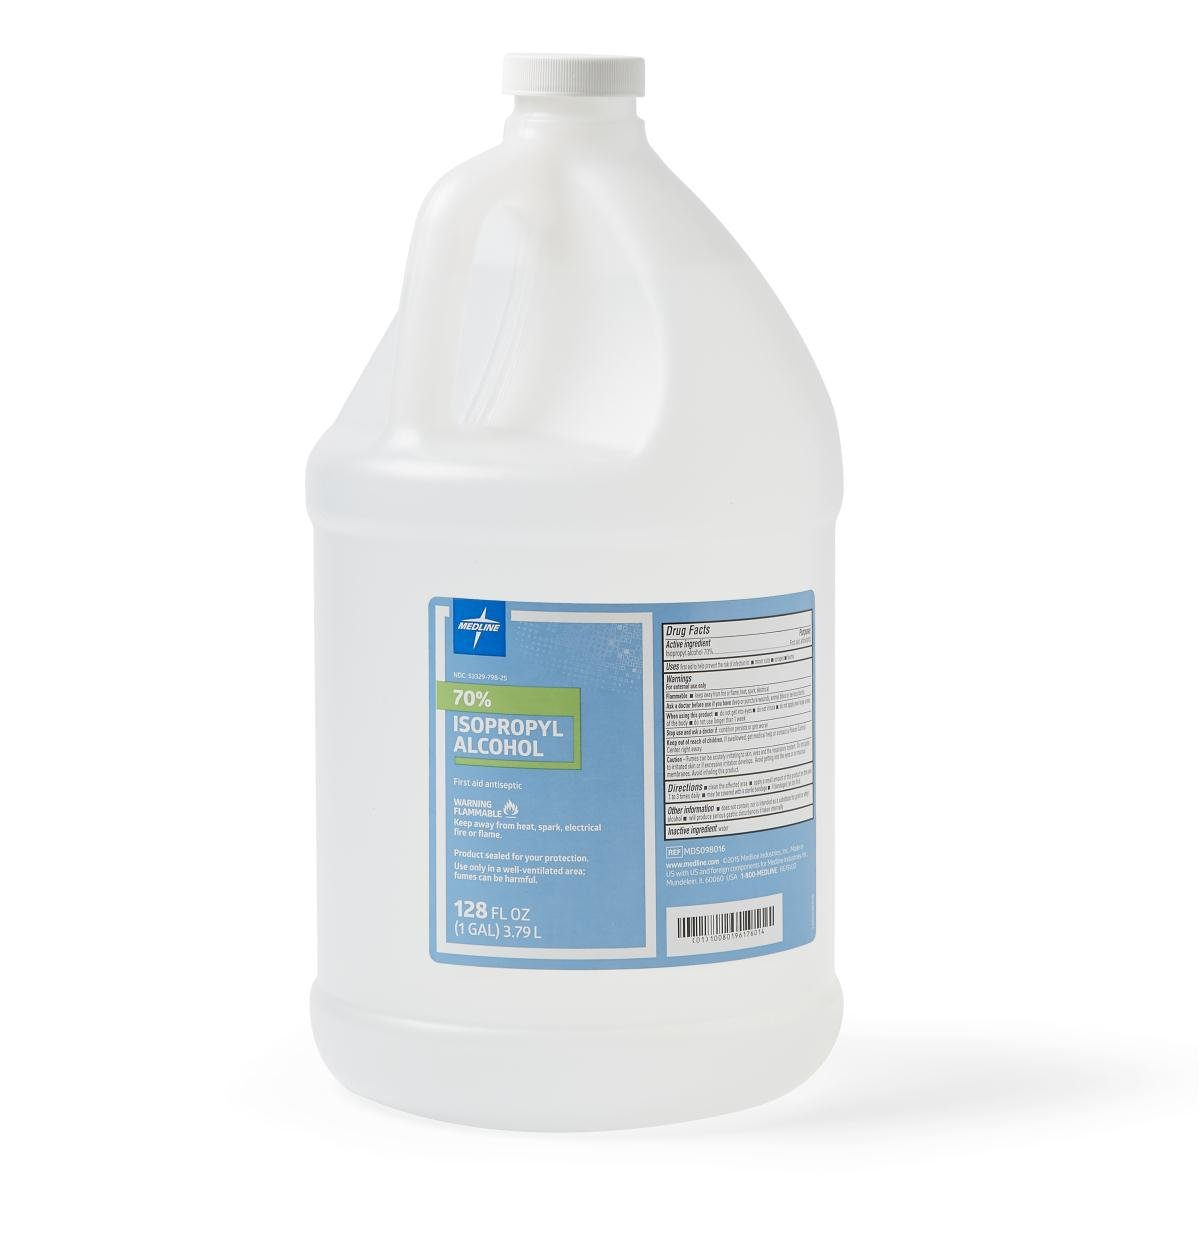 Medline MDS098016 Alcohol, Rubbing, Isopropyl-70%, 1 gal (Pack of 4)